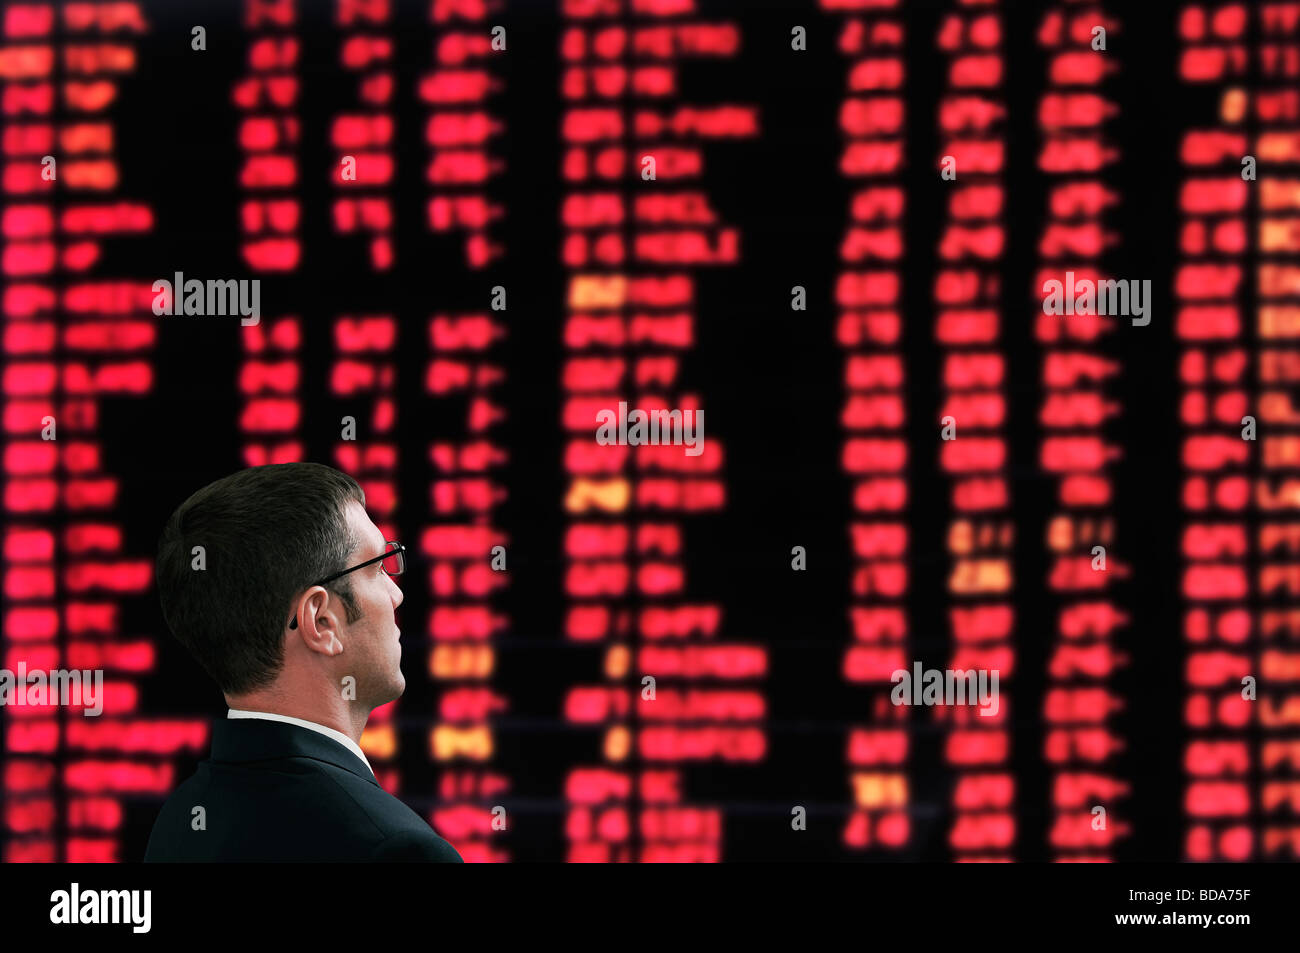 Stockbroker in Front of a Screen Showing Market Prices in a Stock Exchange - Stock Image